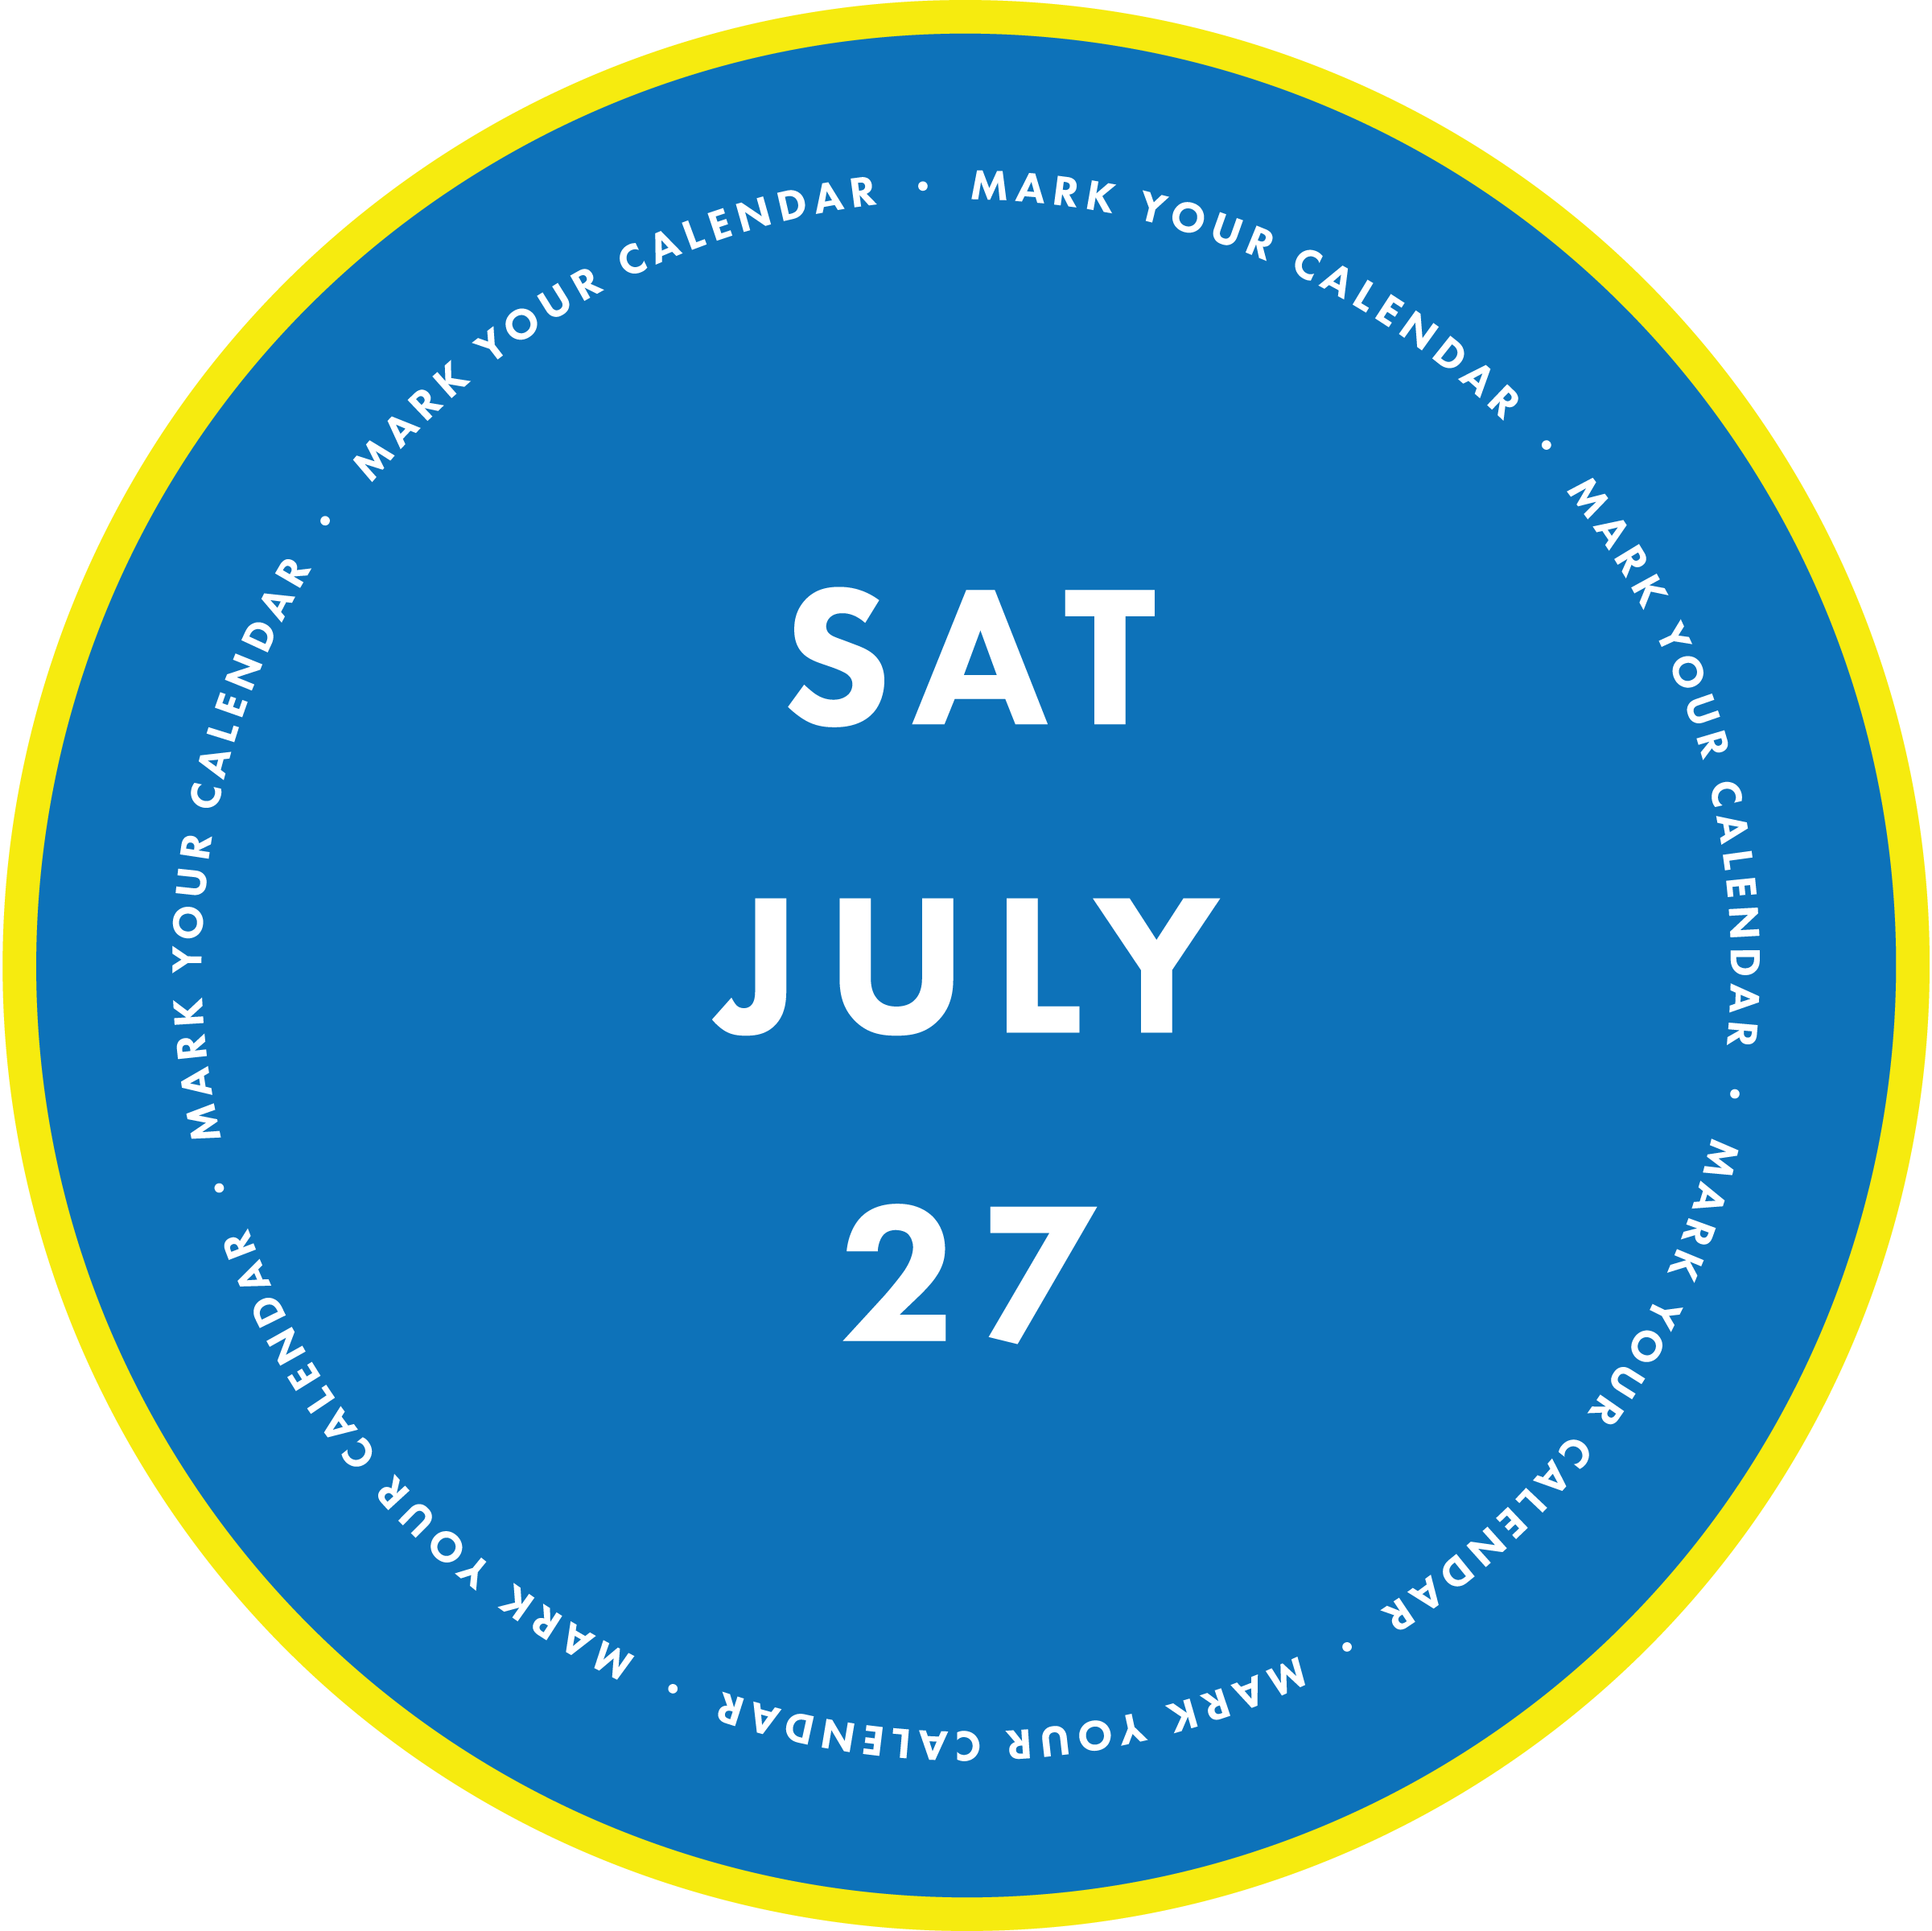 Saturday, July 27